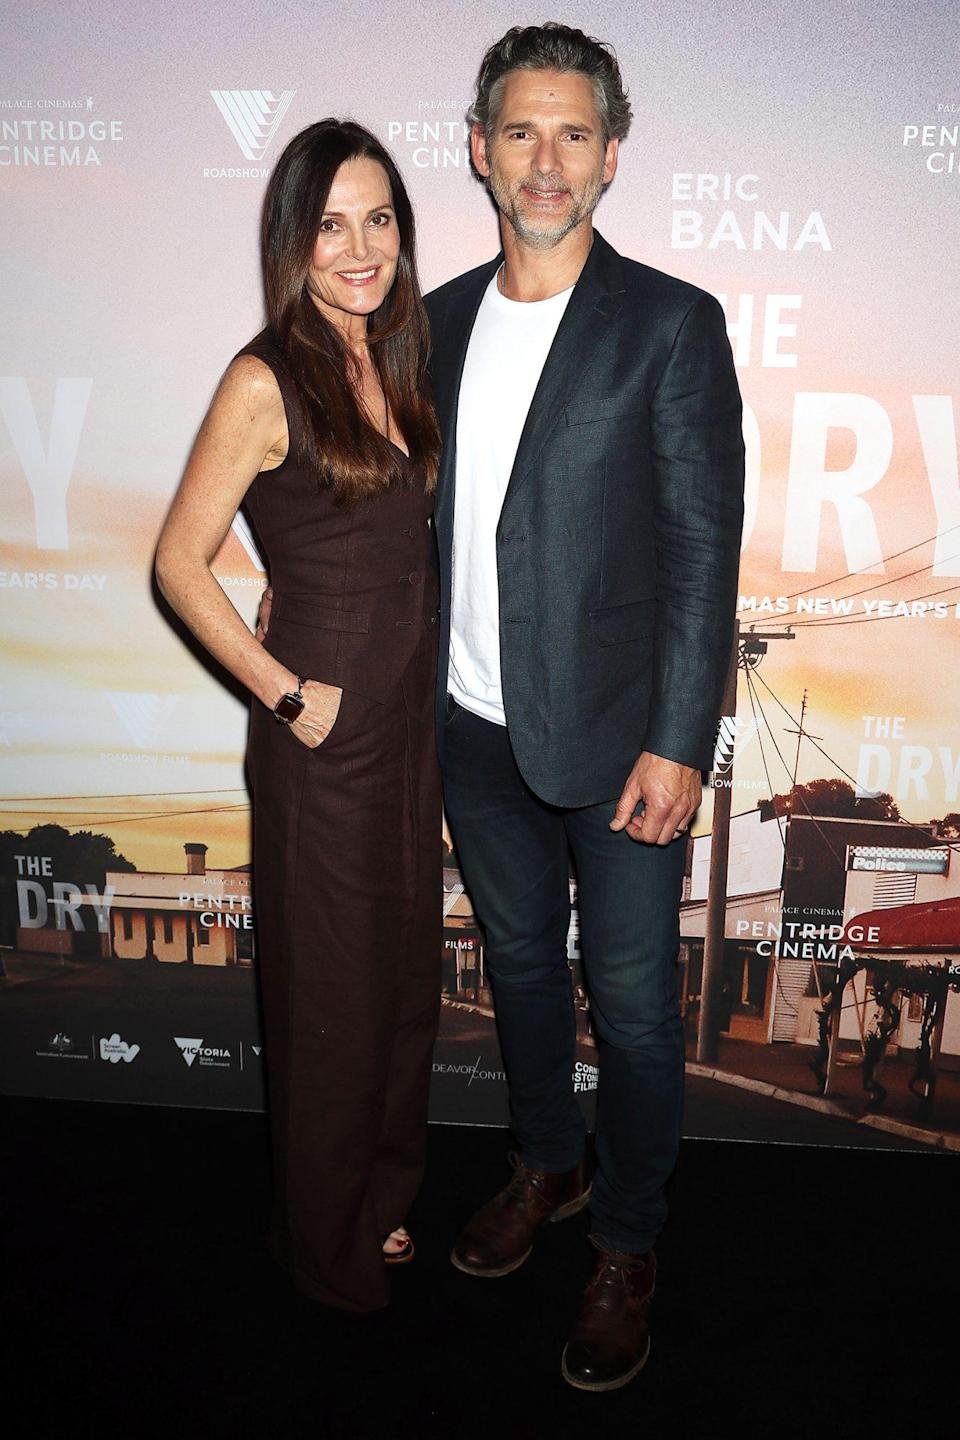 <p>Eric Bana and his wife Rebecca pose on the red carpet for the Australian premiere of <em>The Dry</em> on Friday in Melbourne, Australia. </p>